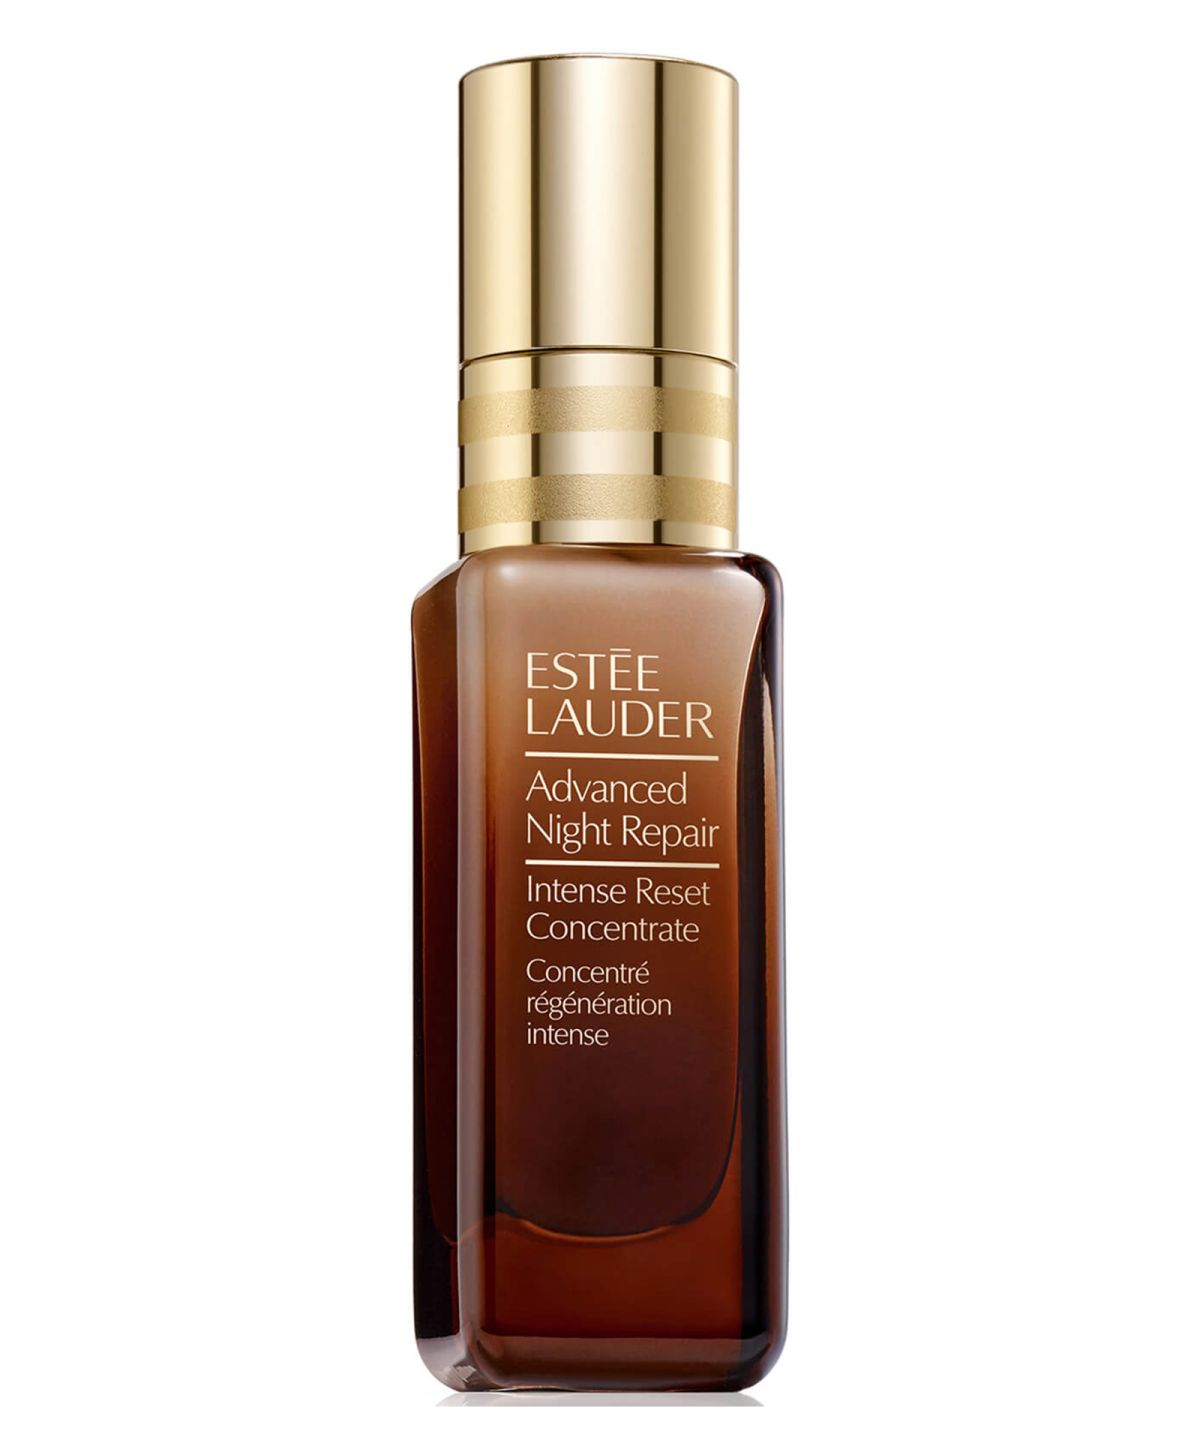 Estee Lauder S Bestselling Advanced Night Repair Launches New Formula Woman Home